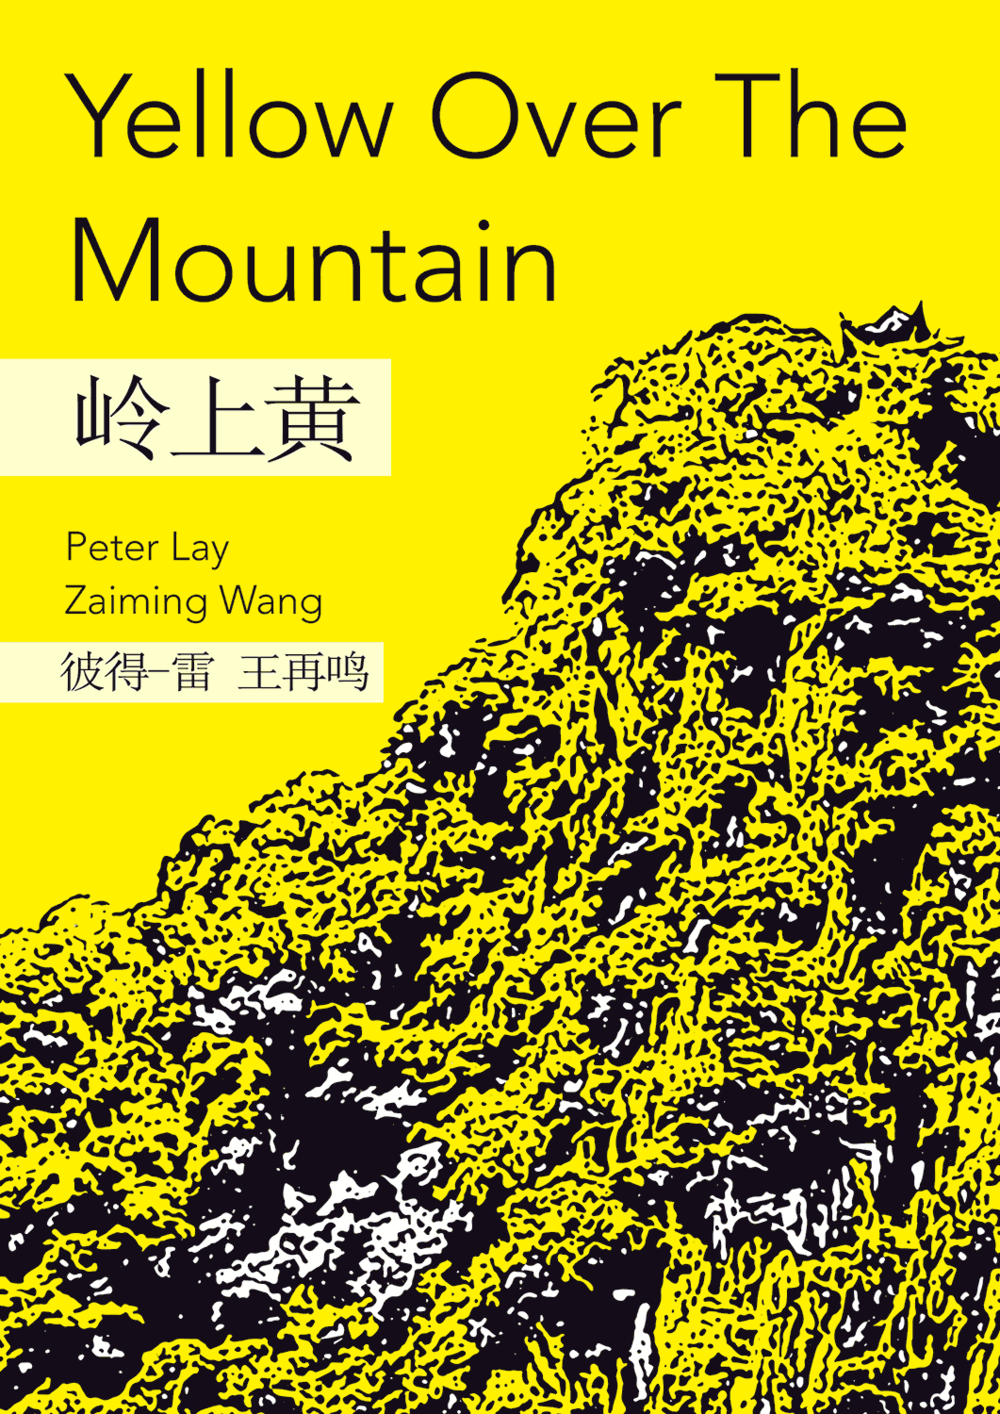 Front cover design of Yellow Over The Mountain a book by Peter Lay & Zaiming Wang